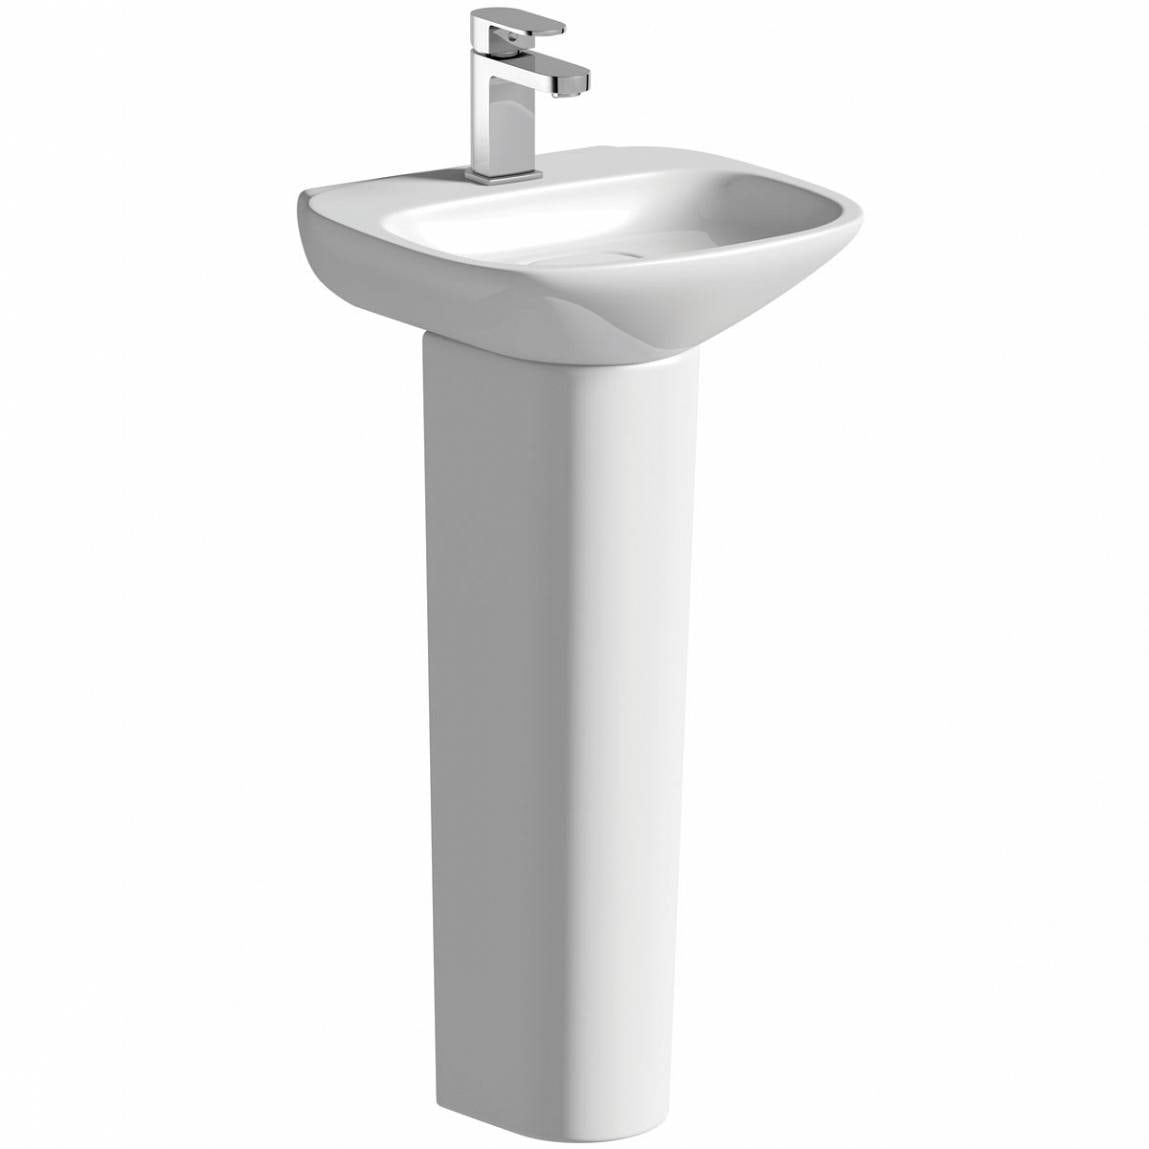 Mode Heath 1 tap hole full pedestal basin 400mm with waste